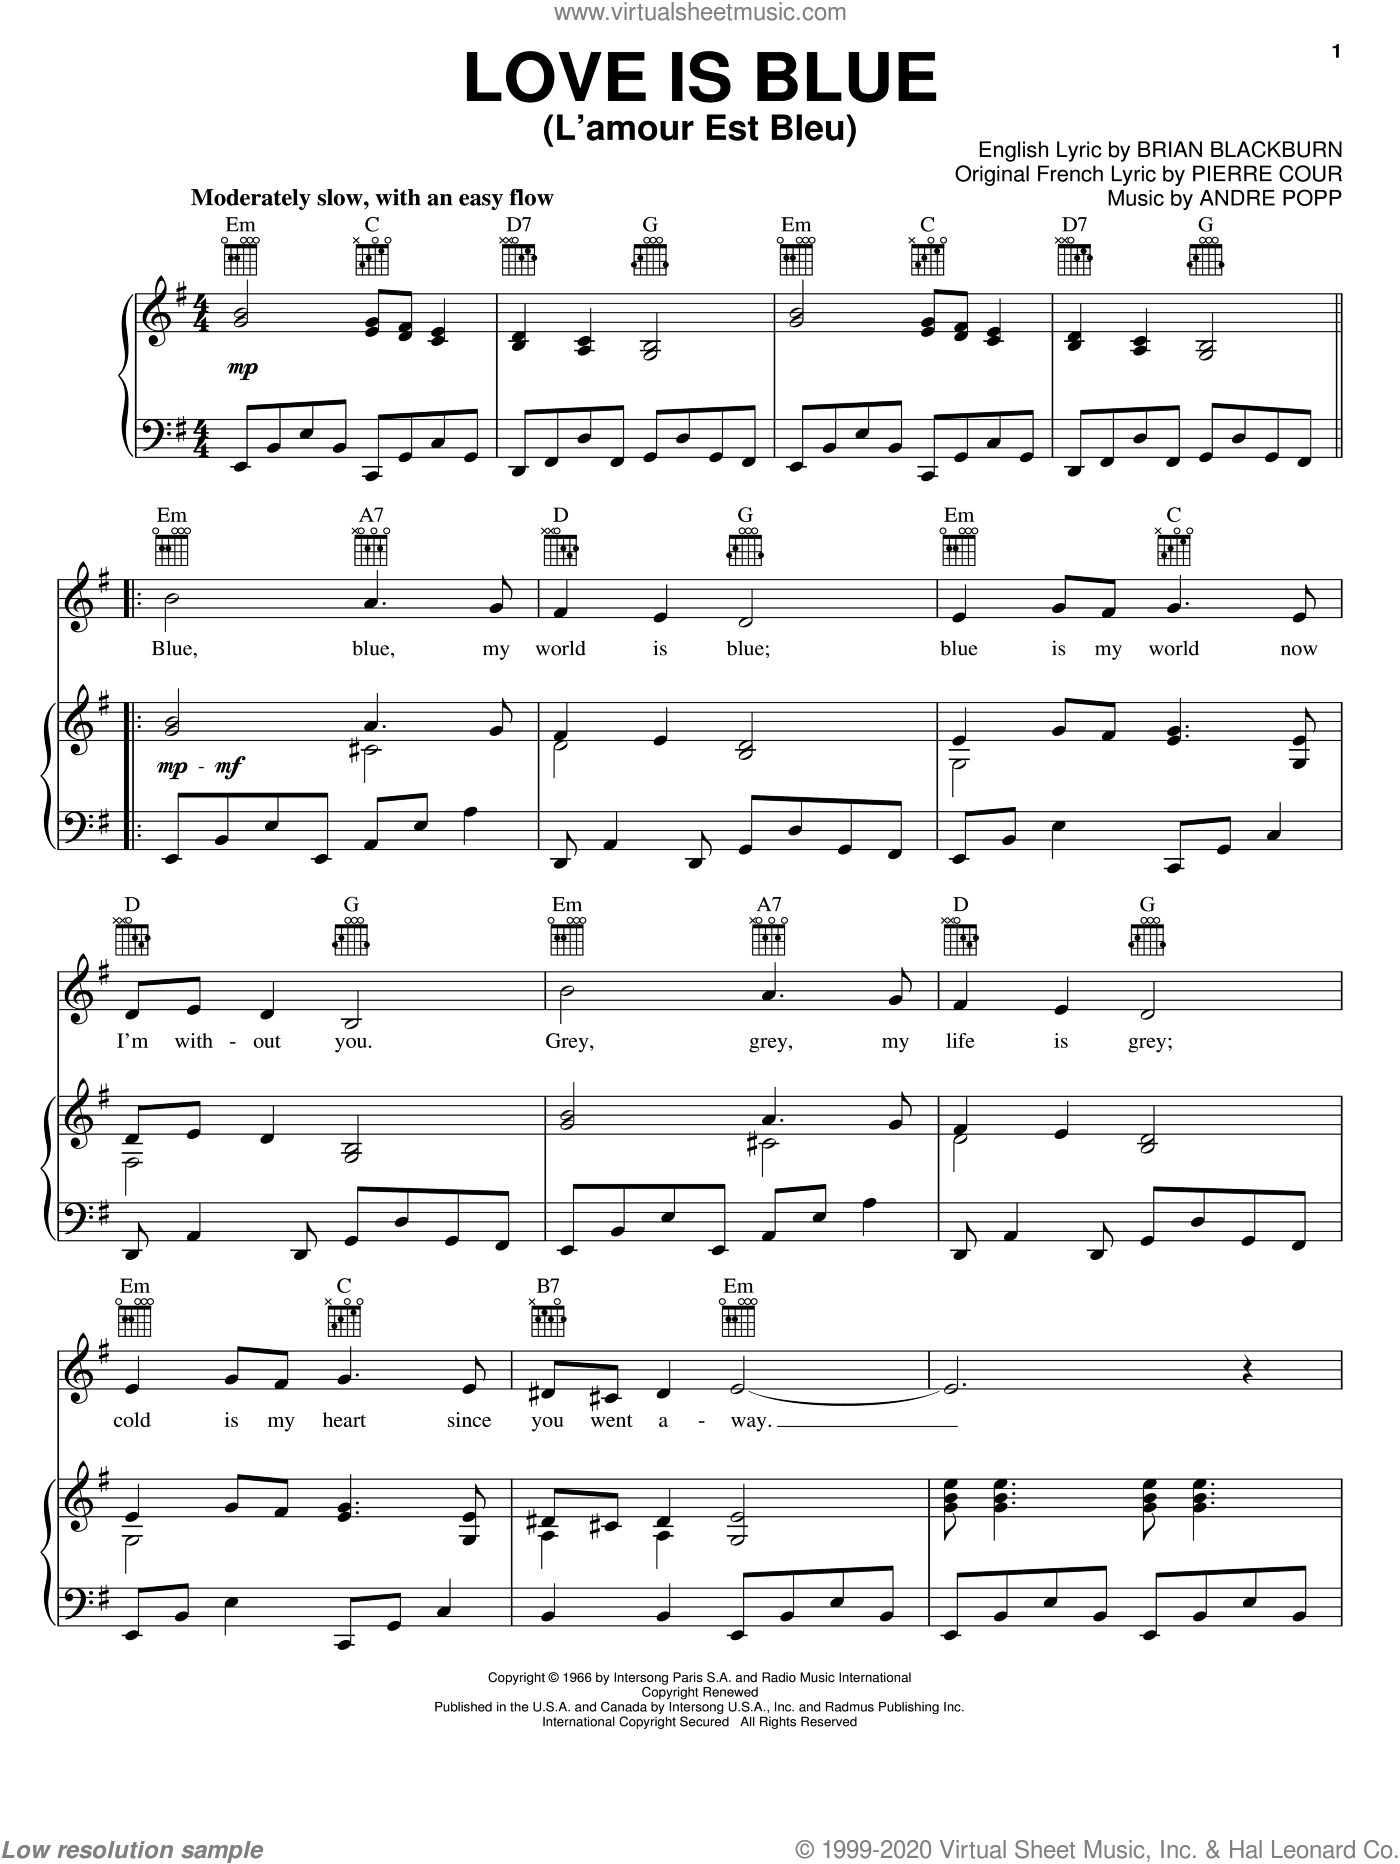 Love Is Blue (L'amour Est Bleu) sheet music for voice, piano or guitar by Pierre Cour and Andre Popp. Score Image Preview.